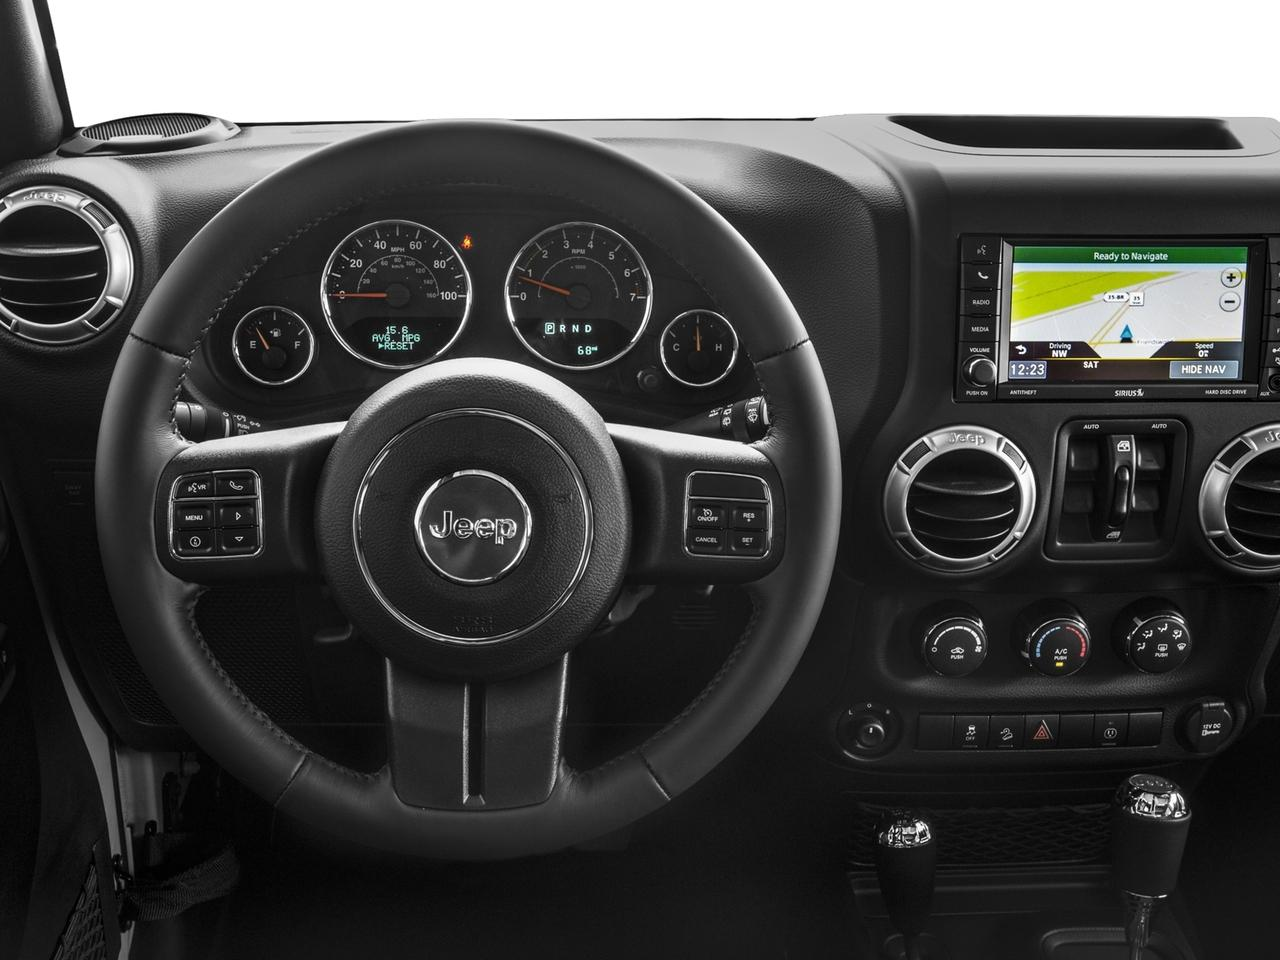 Used 2017 Jeep Wrangler Unlimited in Granite Crystal ...